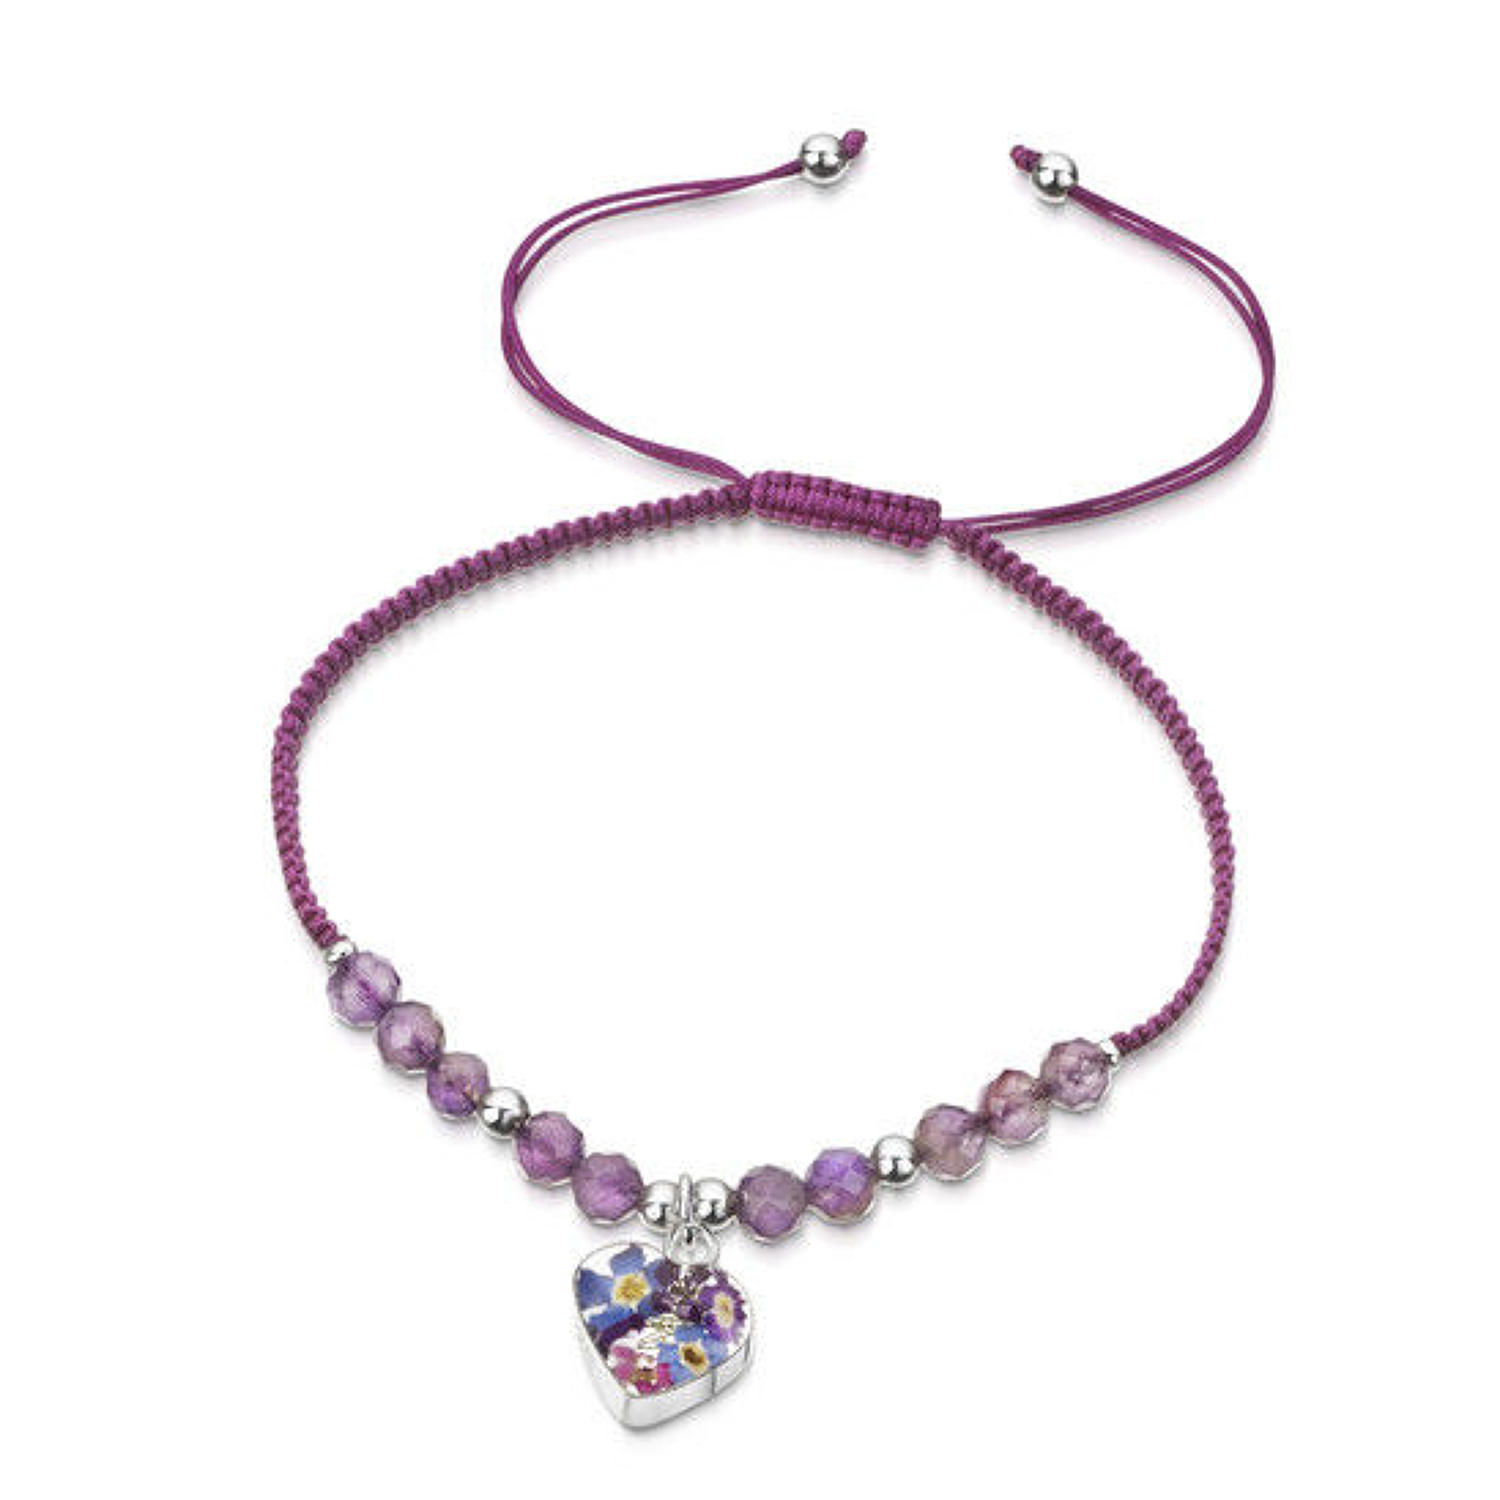 Shrieking Violets-purple nylon & amethyst -purple haze heart